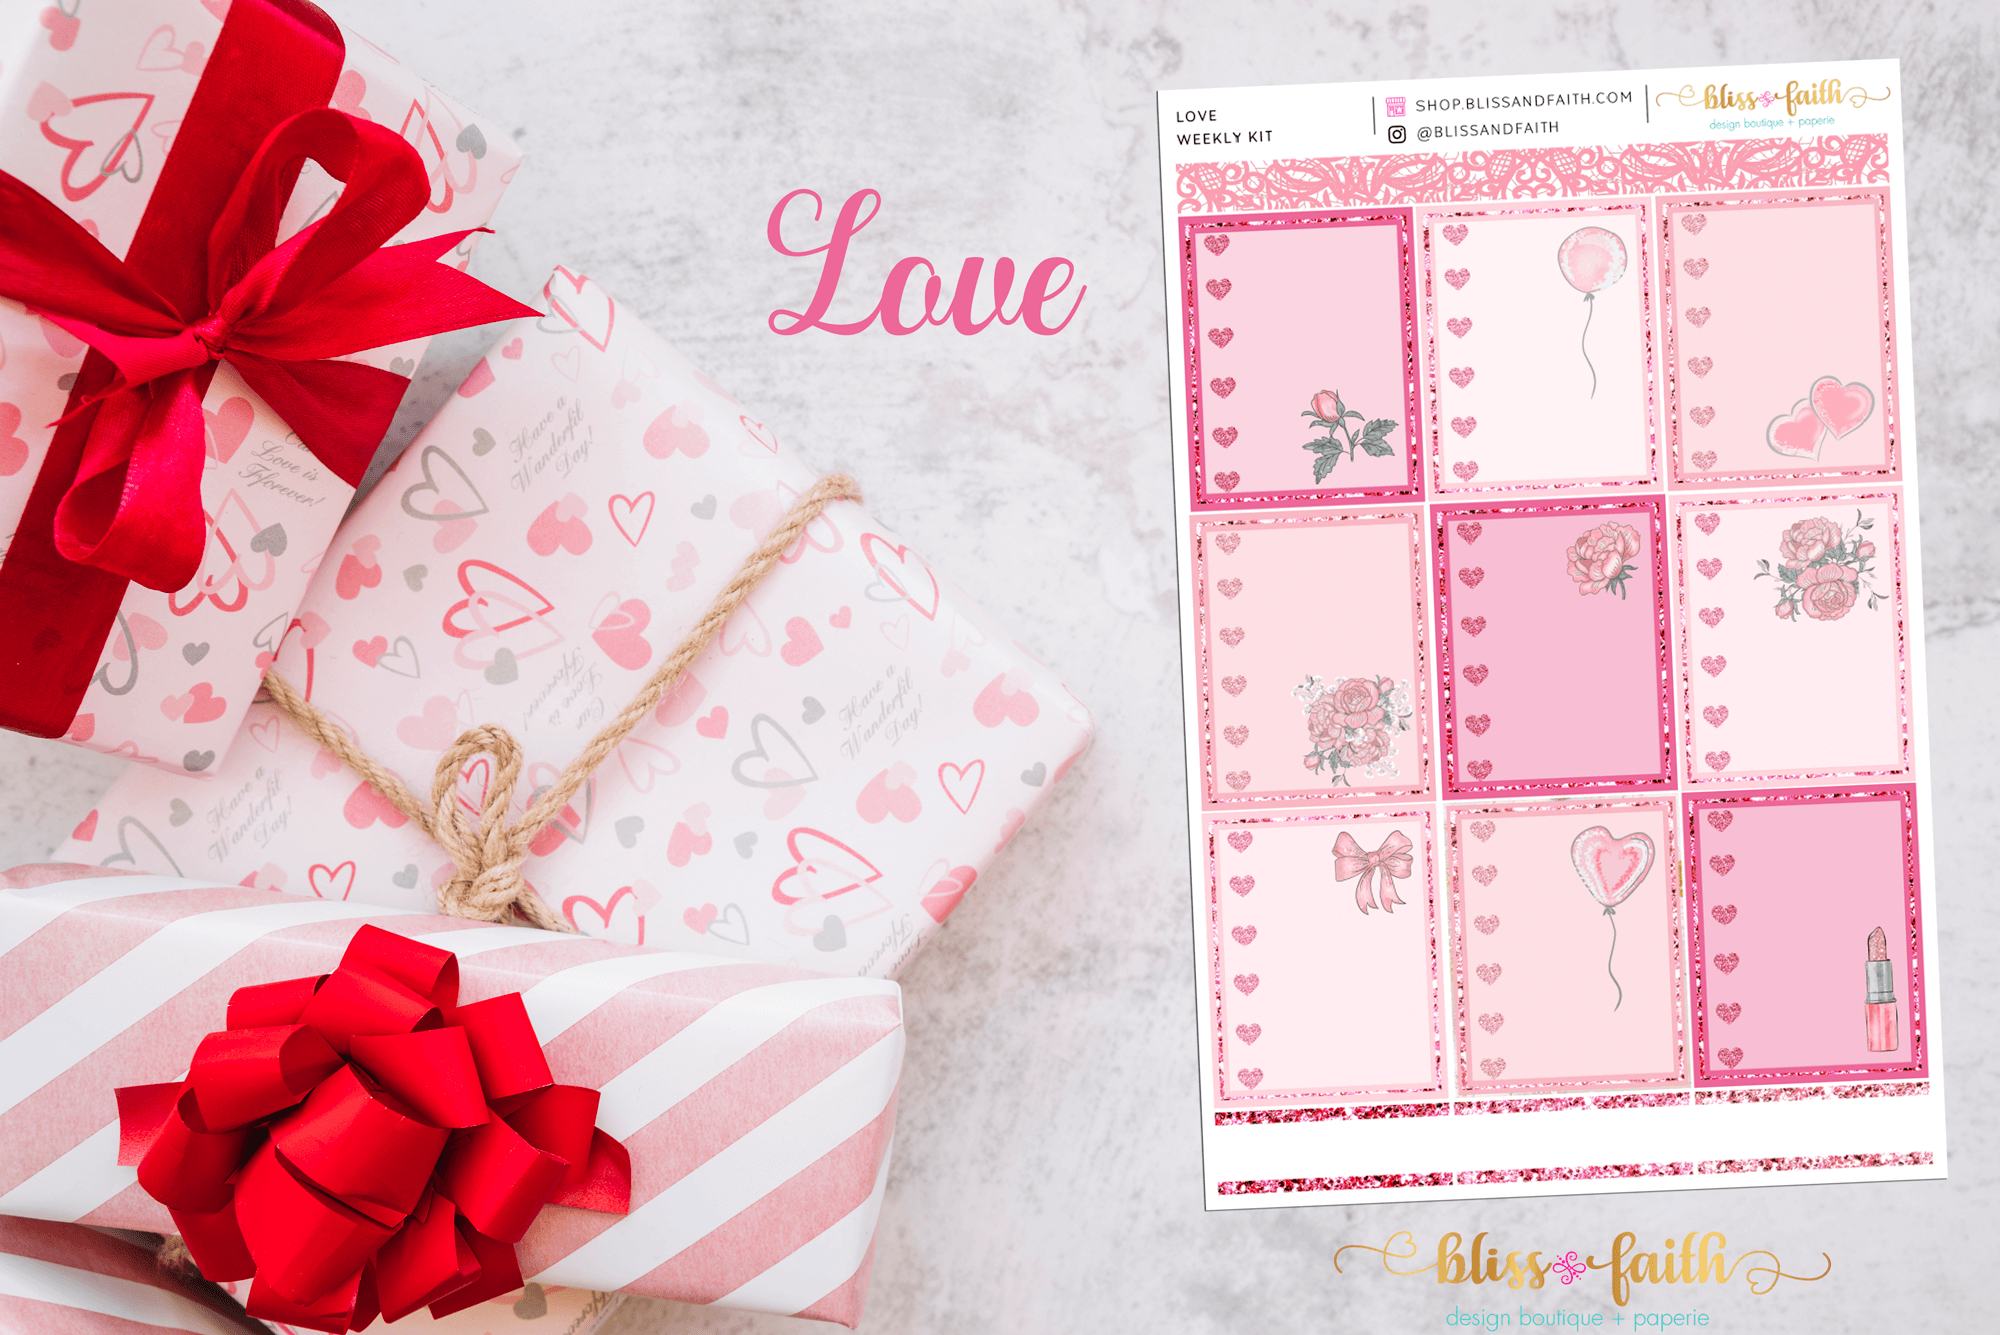 Love Weekly Sticker Kit | blissandfaith.com